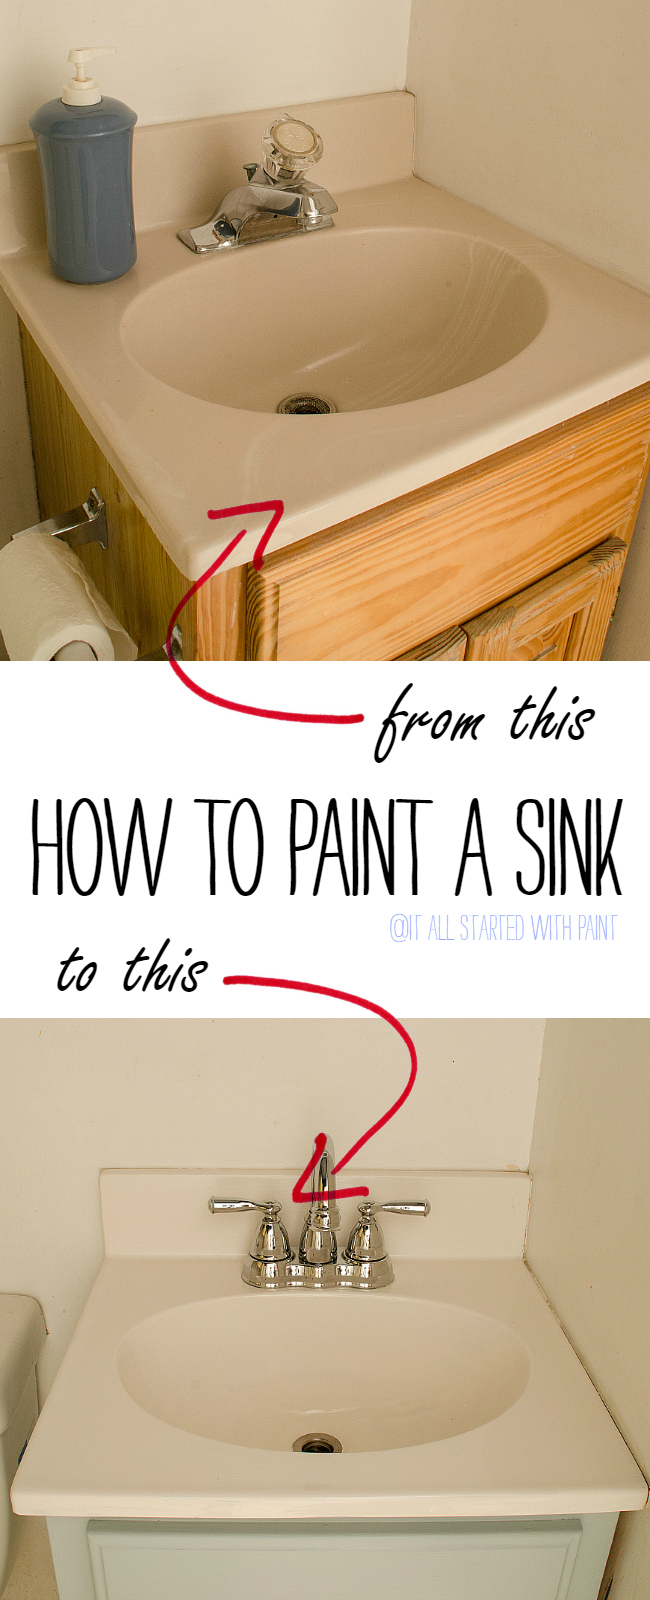 how-to-paint-a-sink